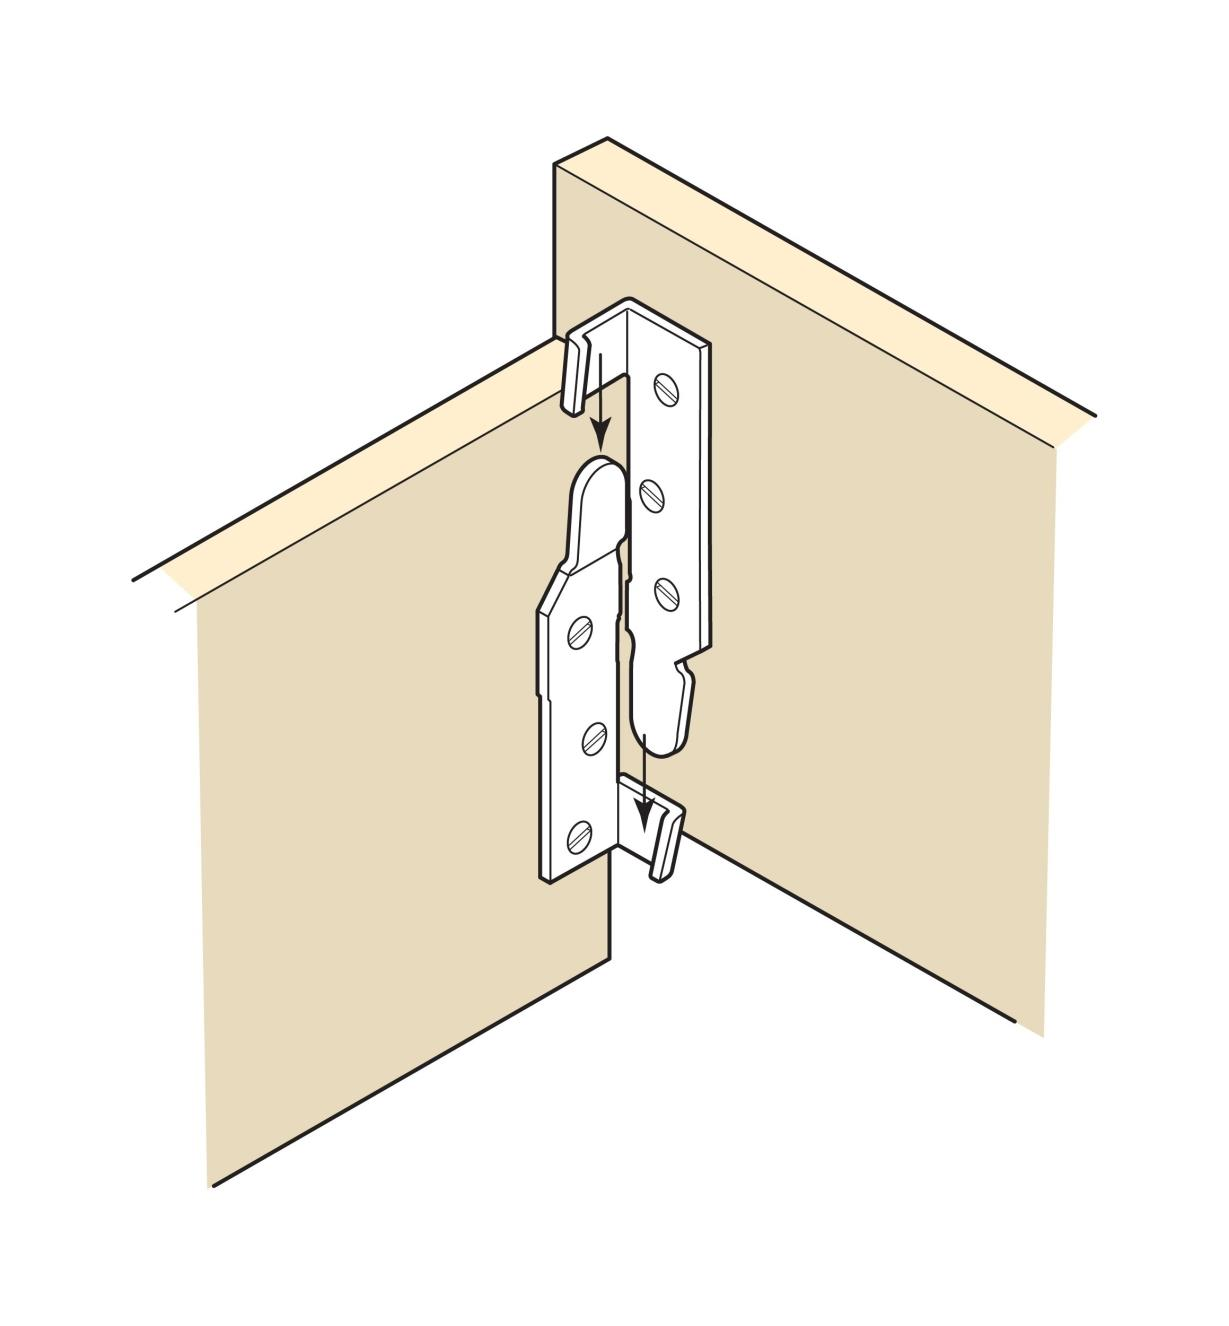 Illustration of Bed Rail Fasteners installed on a bed frame